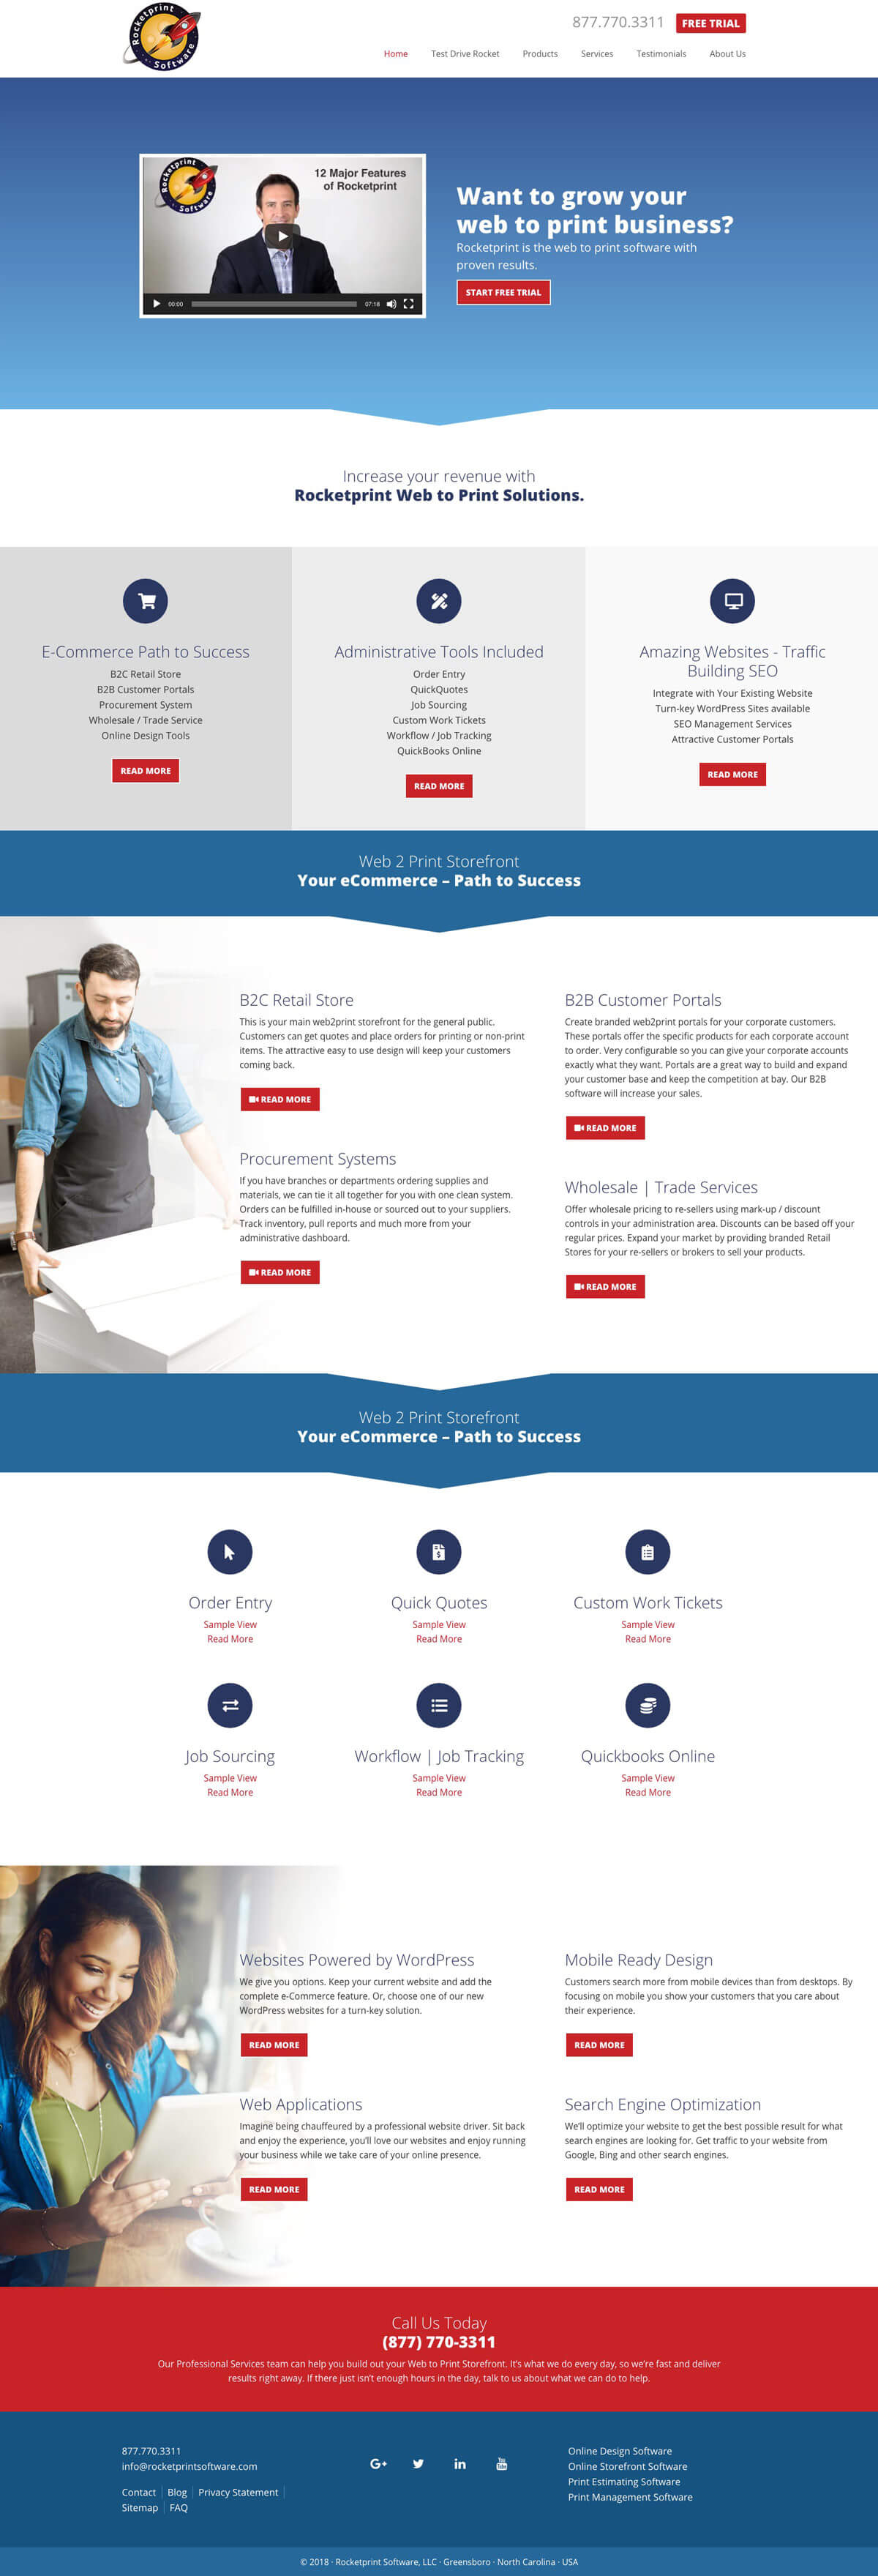 web design concept rocketprint